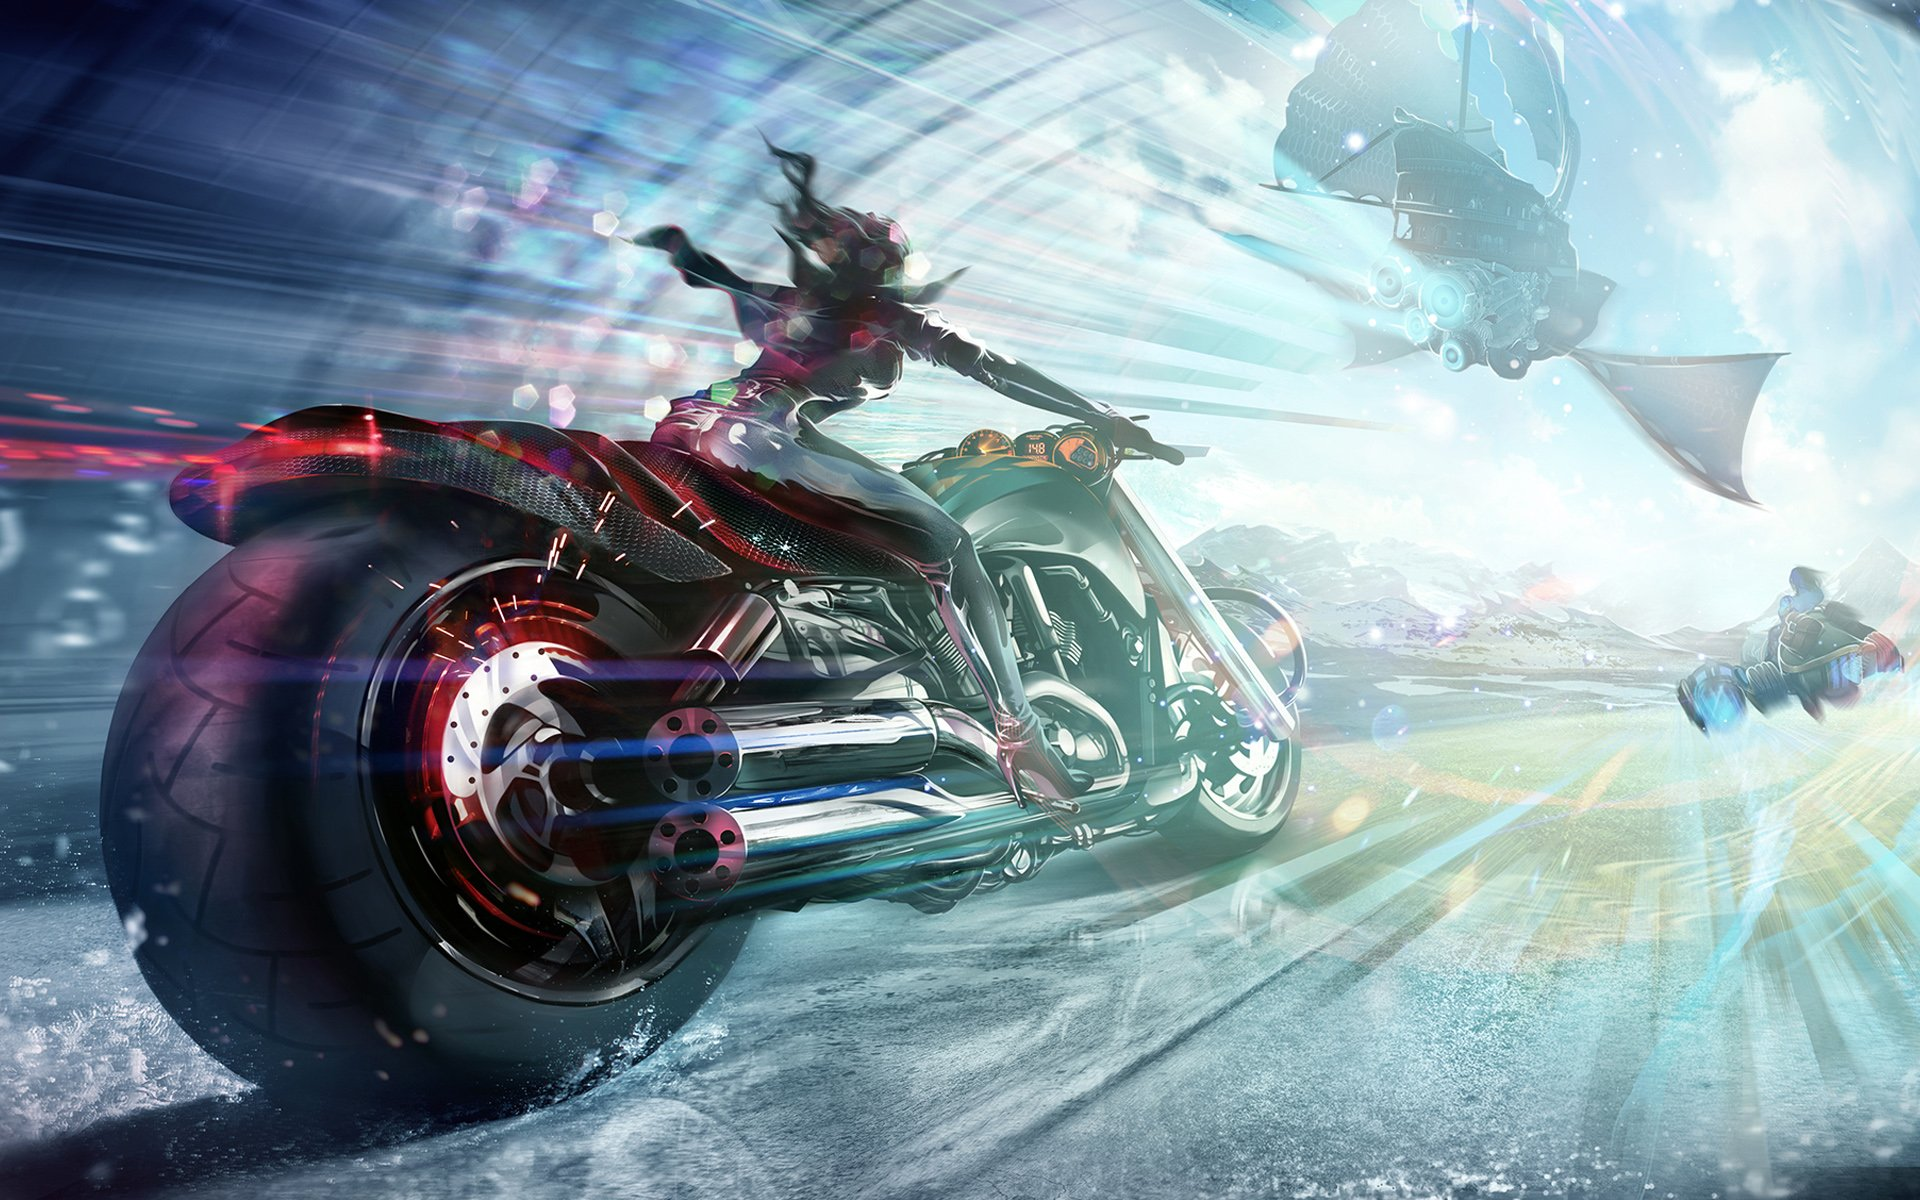 Sci Fi - Vehicle  Woman Sci Fi Motorcycle Race Wallpaper